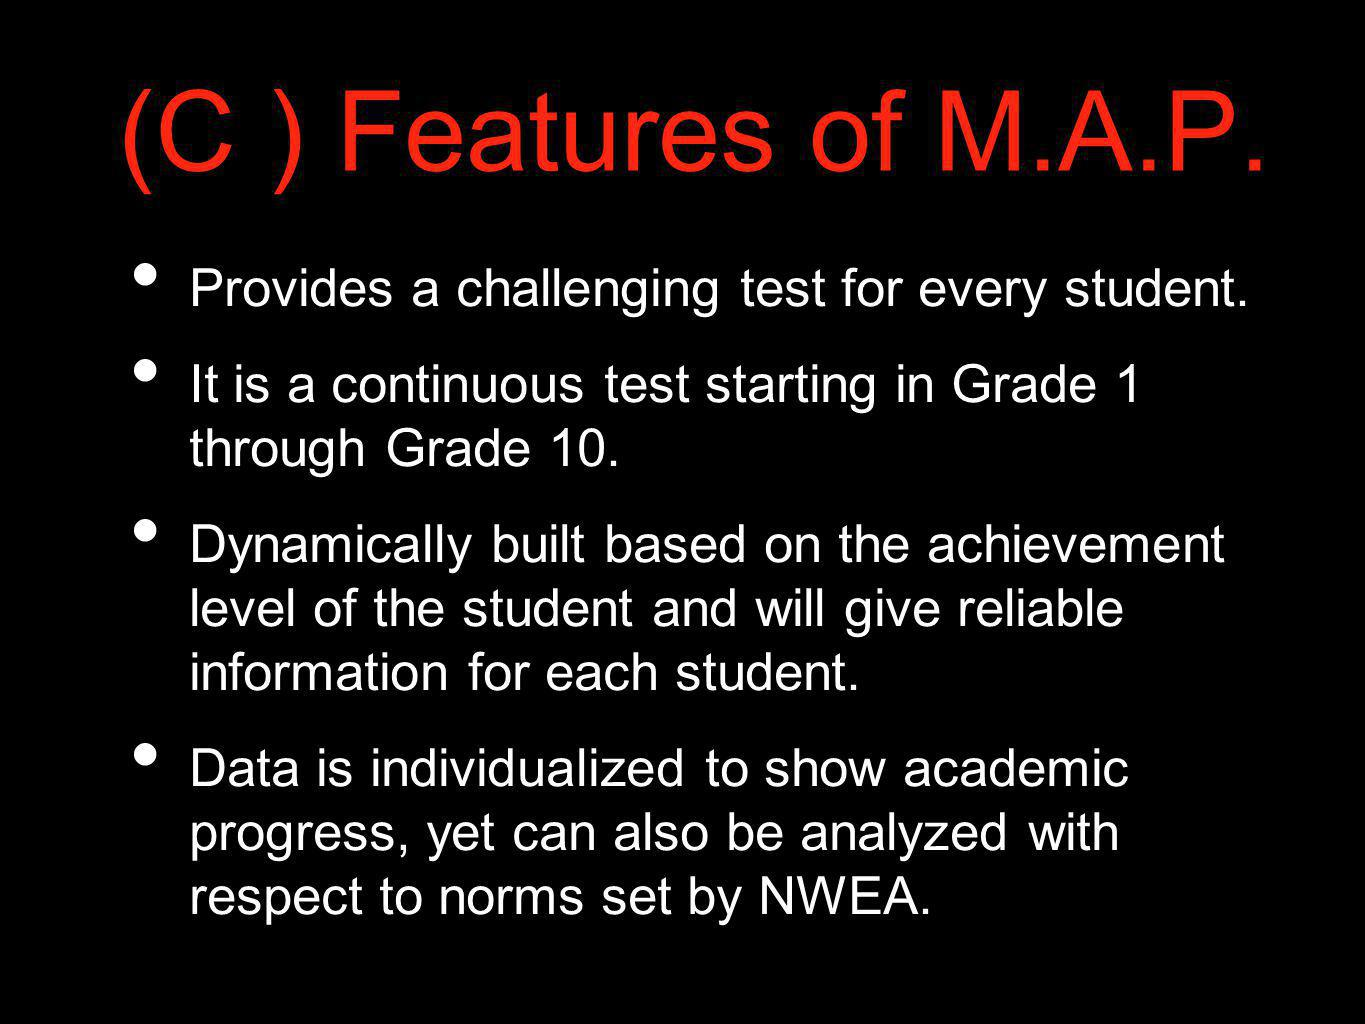 (C ) Features of M.A.P. Provides a challenging test for every student. It is a continuous test starting in Grade 1 through Grade 10. Dynamically built